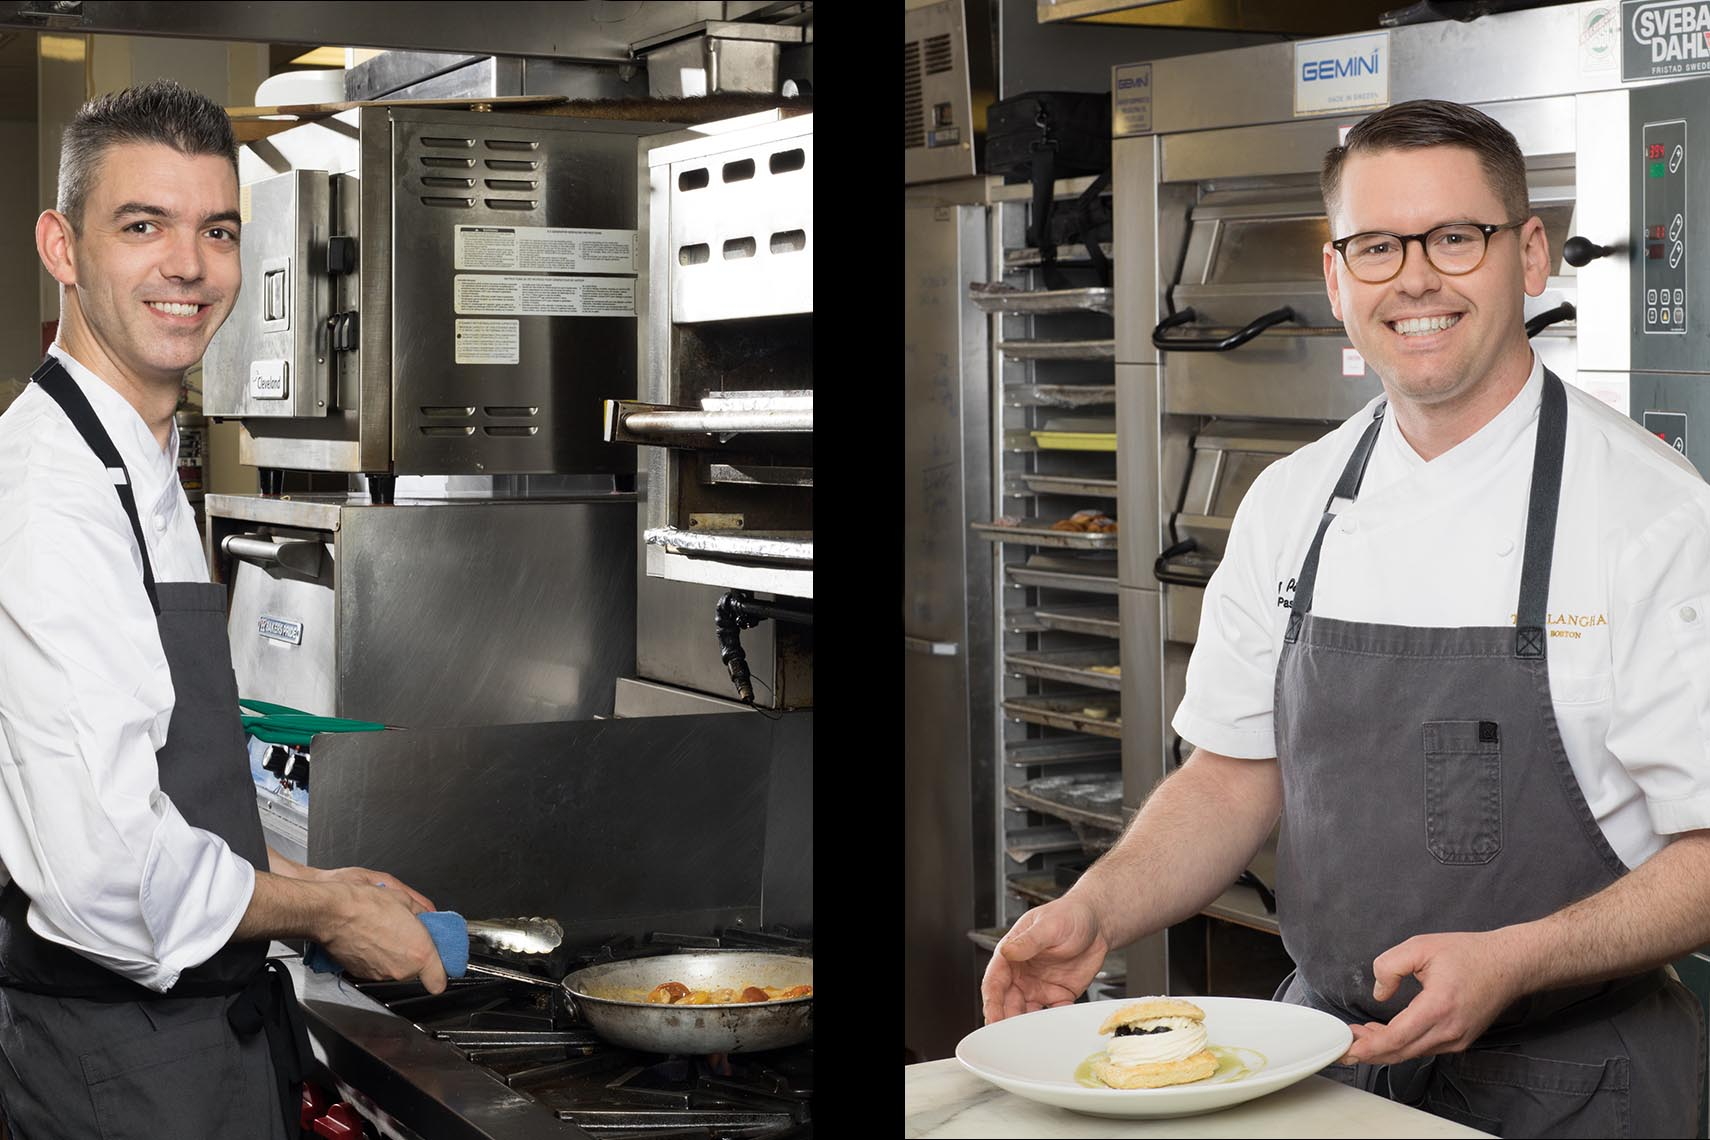 Environmental portraits of Chefs from the Langham Hotel Boston